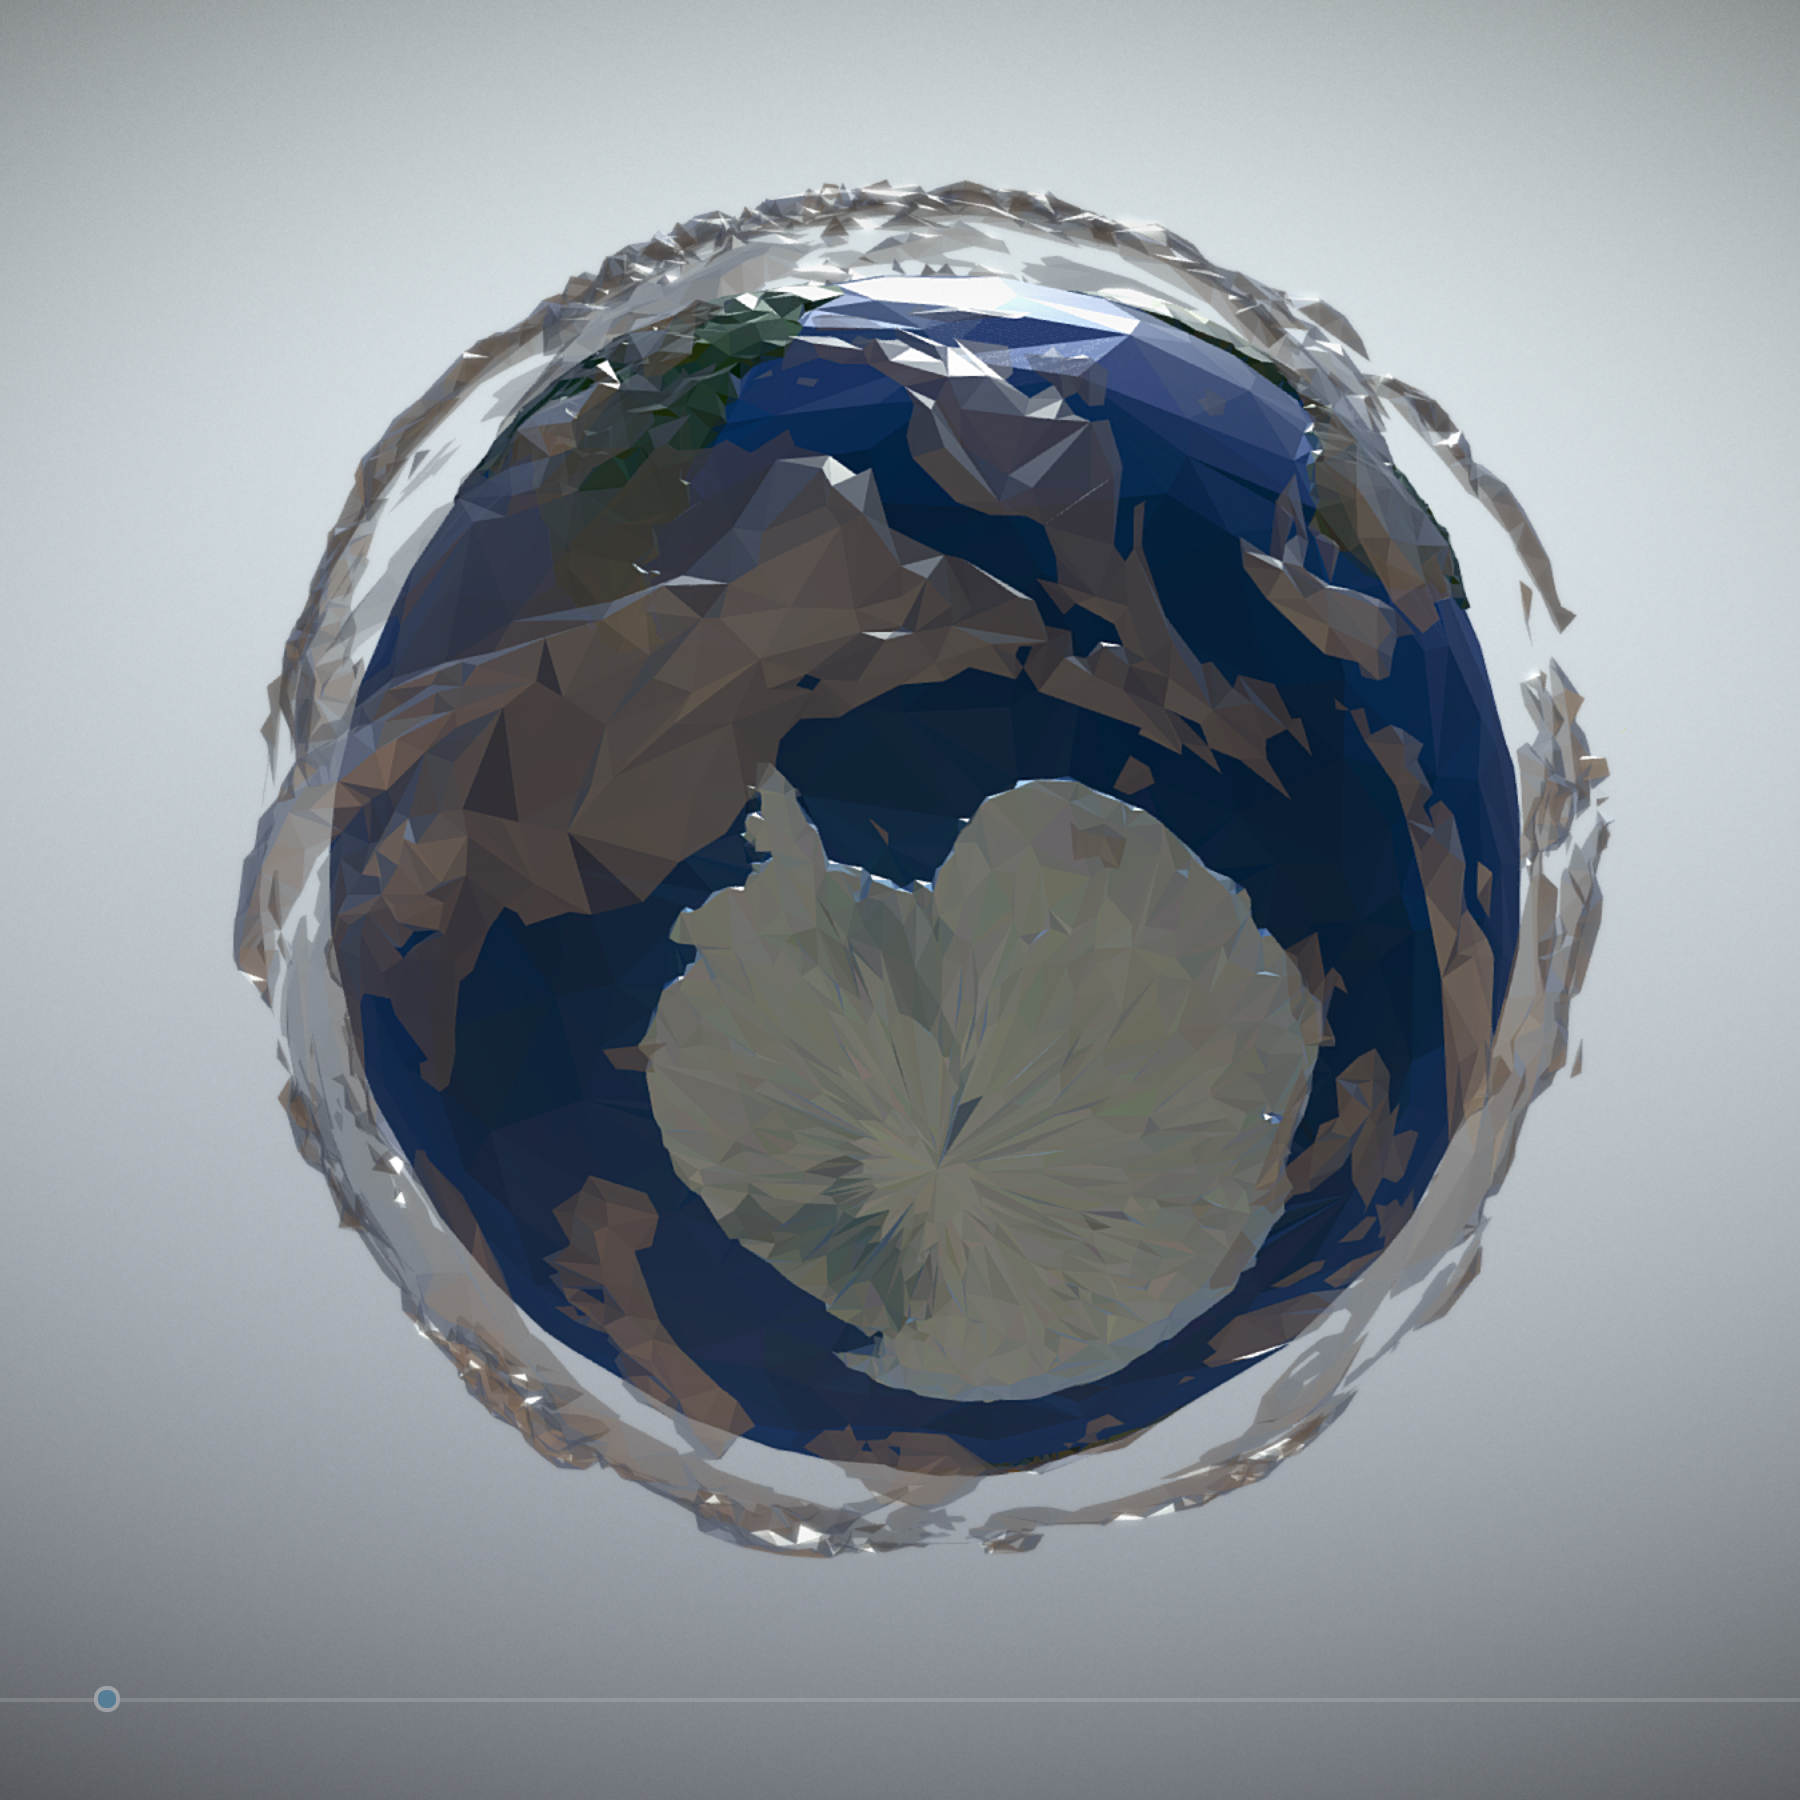 animated planet earth 3d model 3ds max fbx ma mb tga targa icb vda vst pix obj 271052